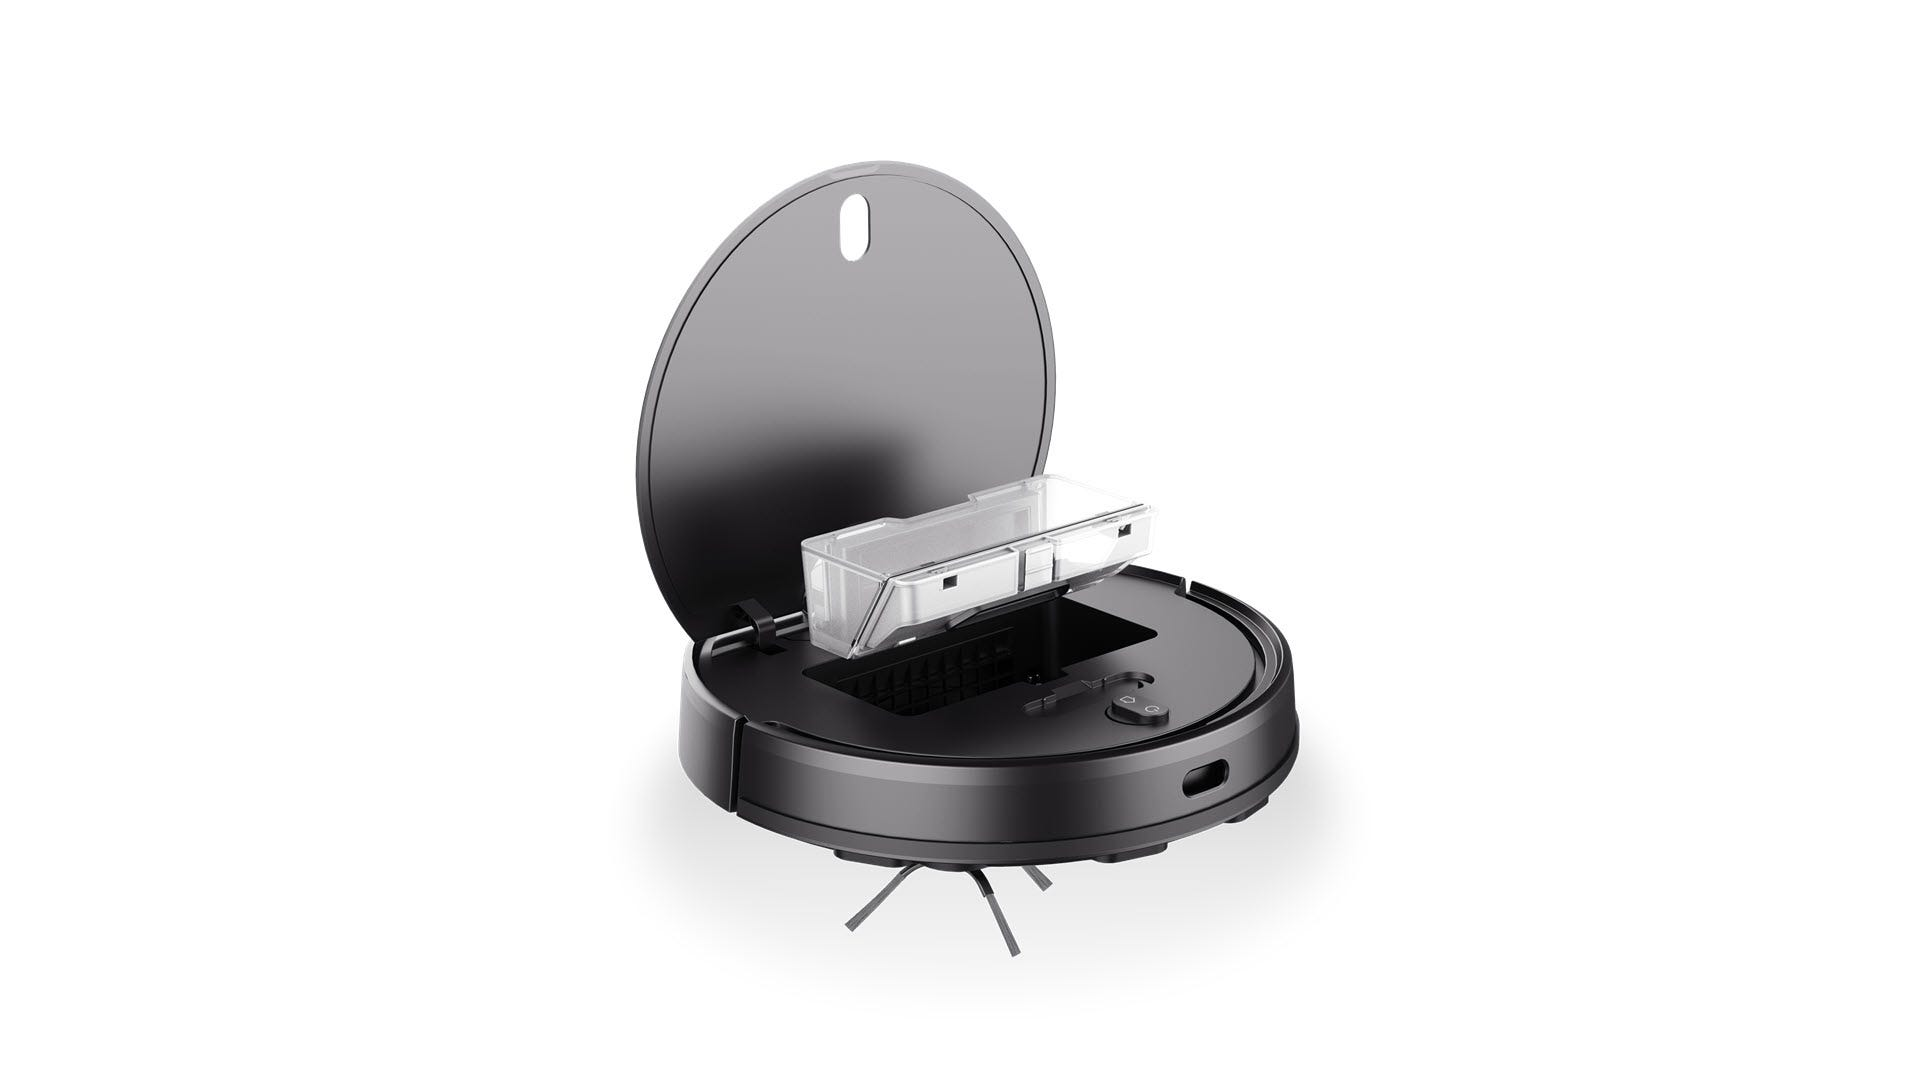 A Wyze robot vacuum with the top opened and dust bin showing.